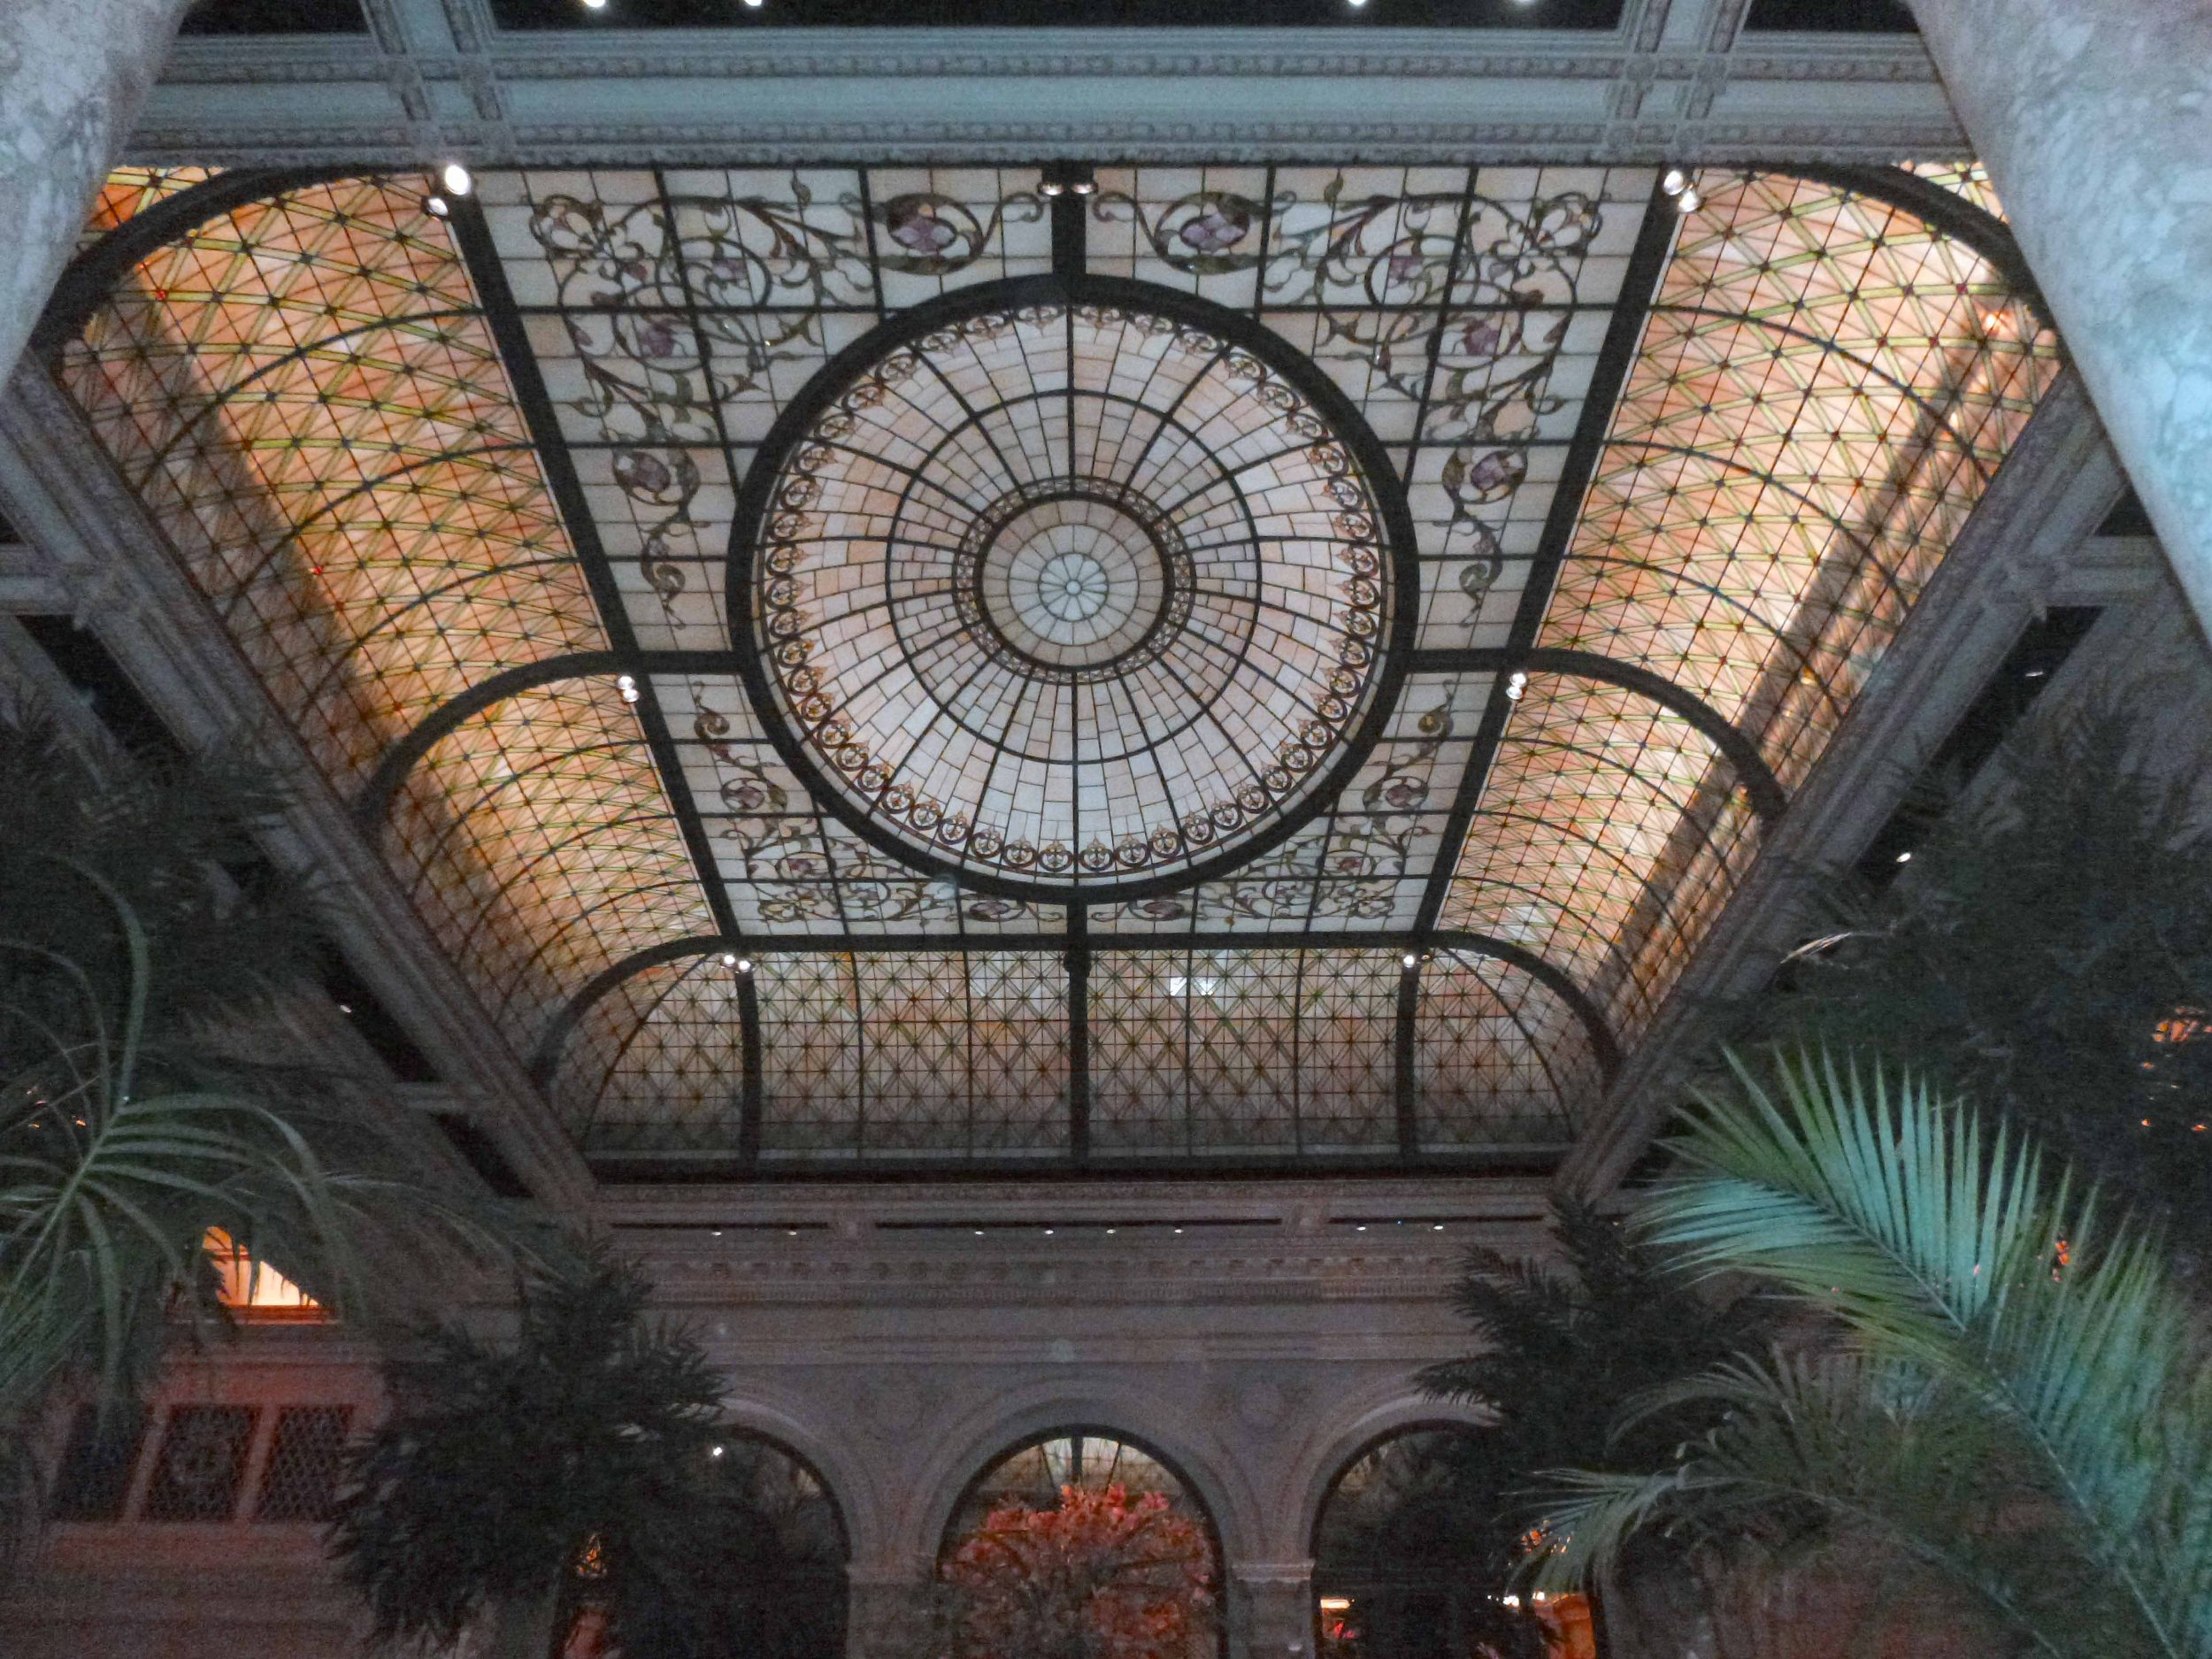 Palm Court at the Plaza hotel.